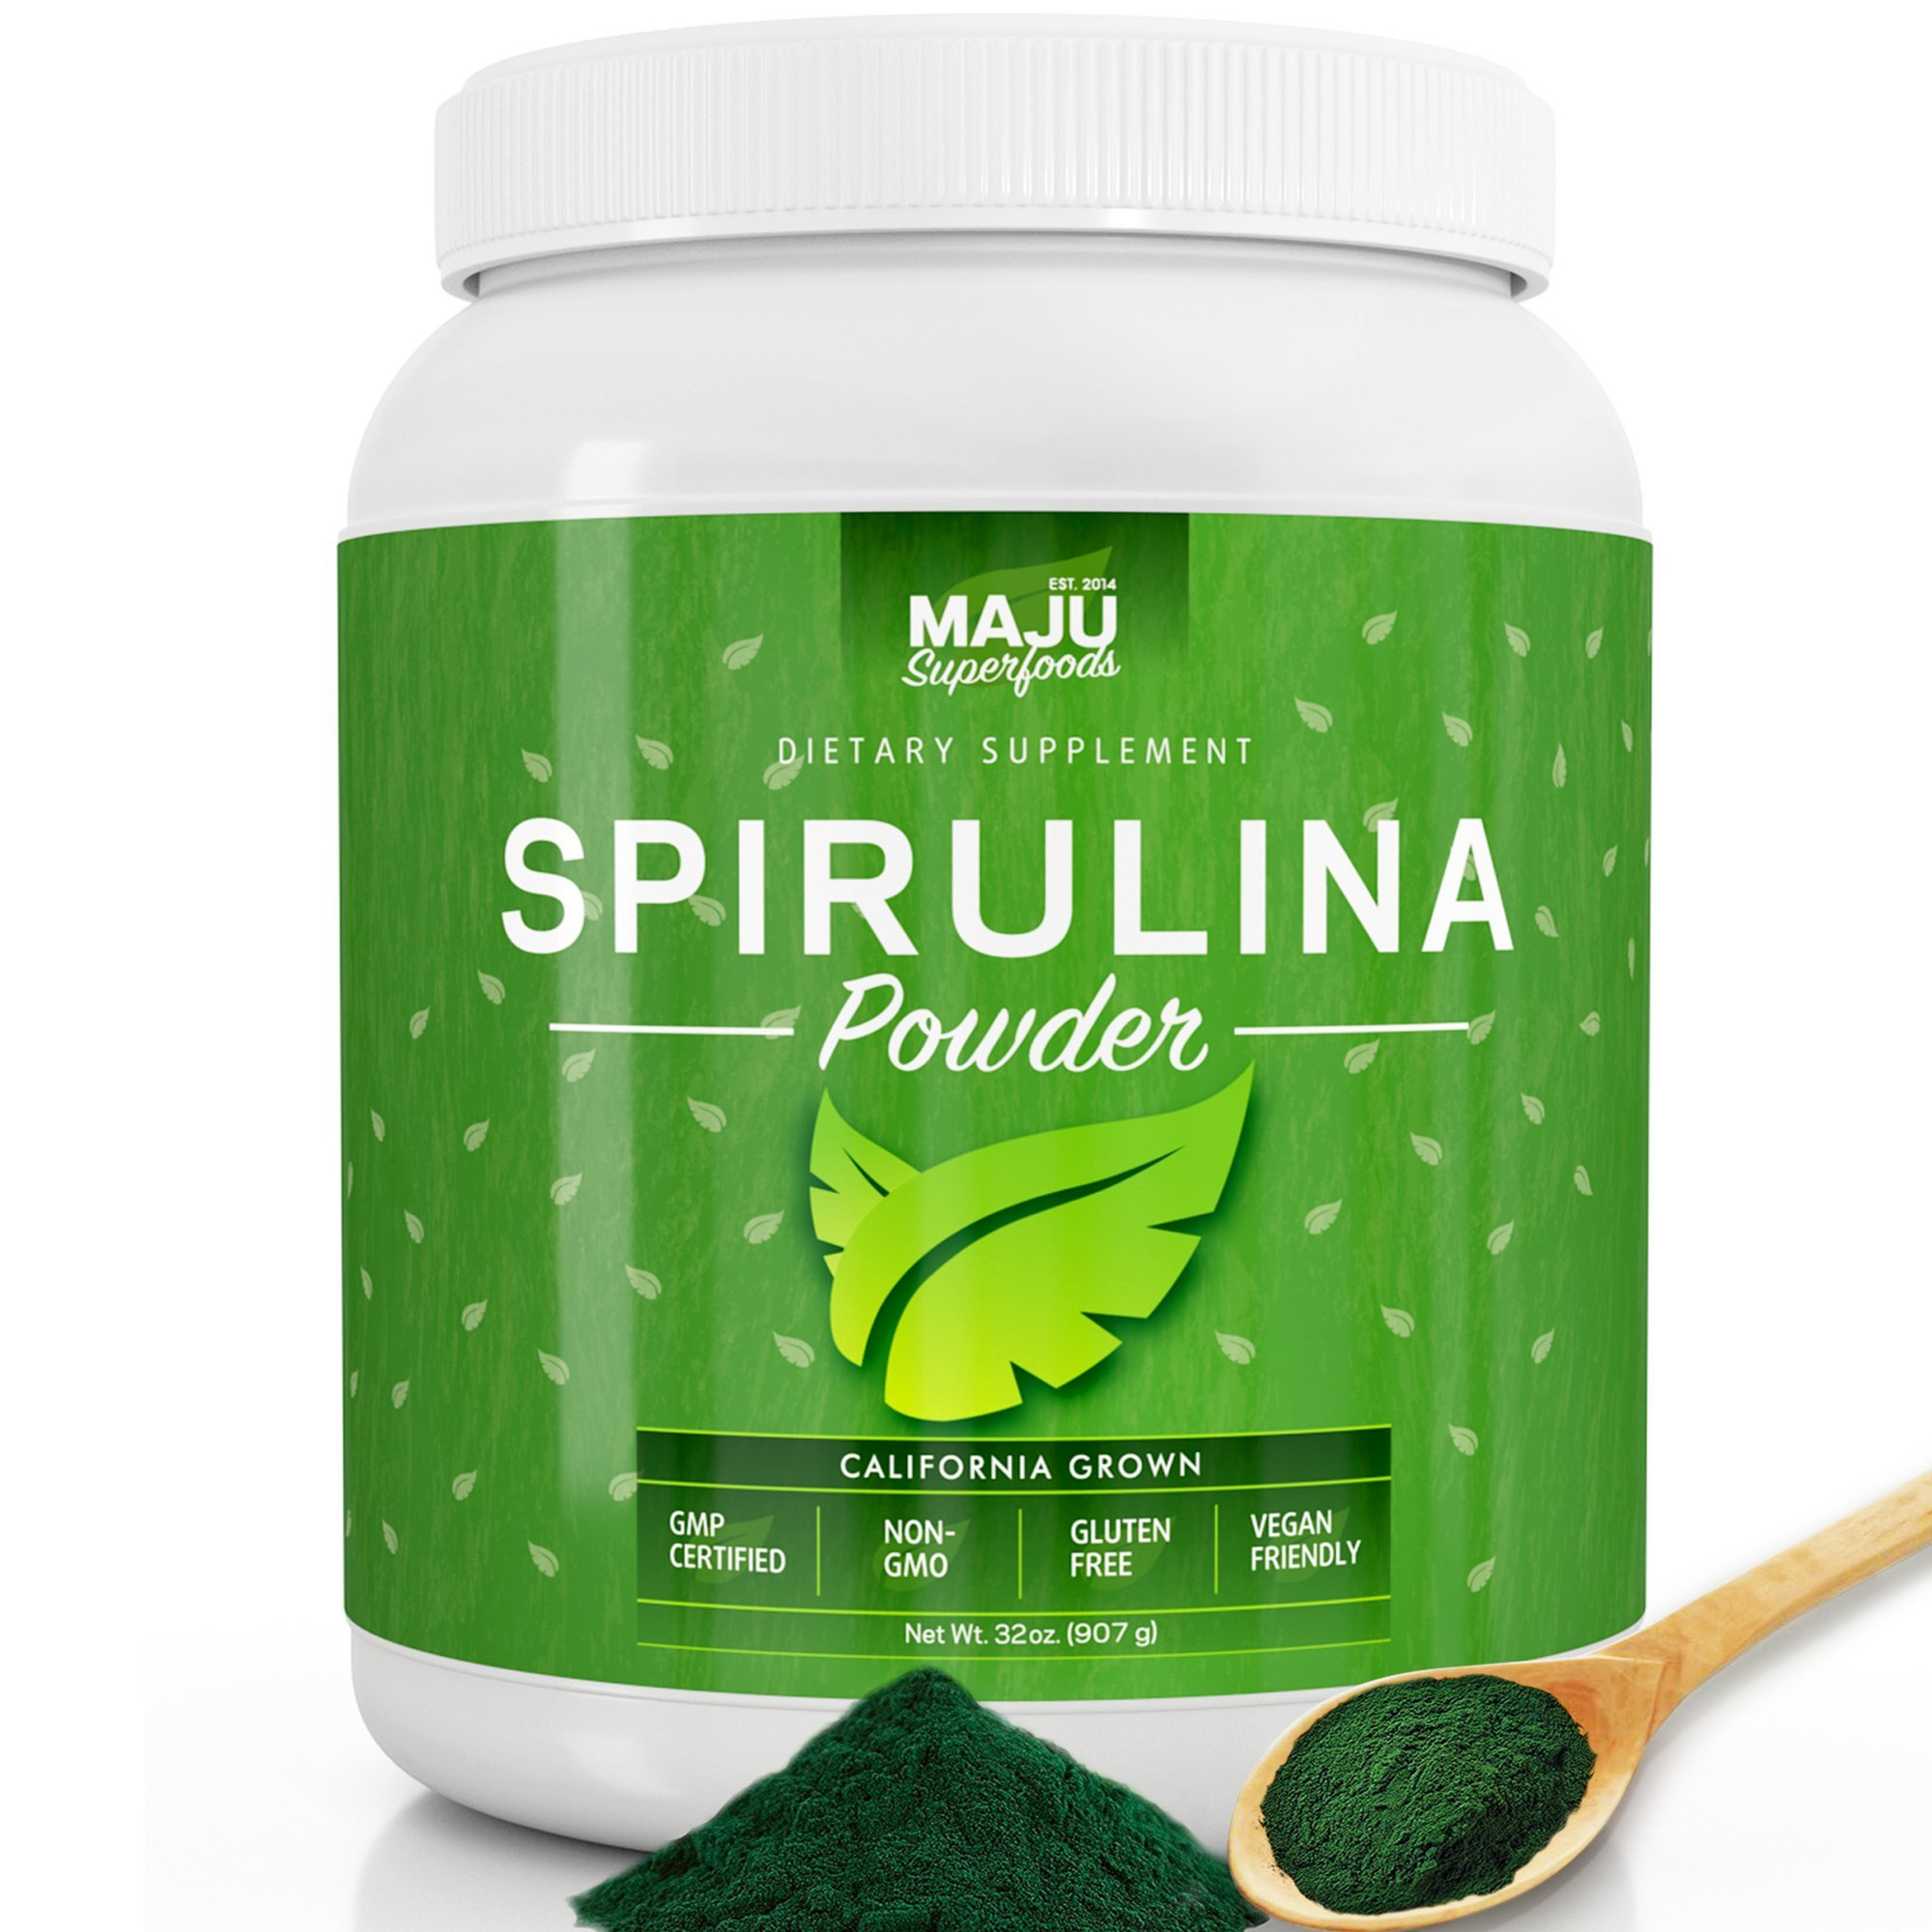 MAJU's California Grown Spirulina Powder (2 Pound): Non-Irradiated, Non-GMO, Spirulina Recipe eBook with Purchase, Vegan, Gluten-Free